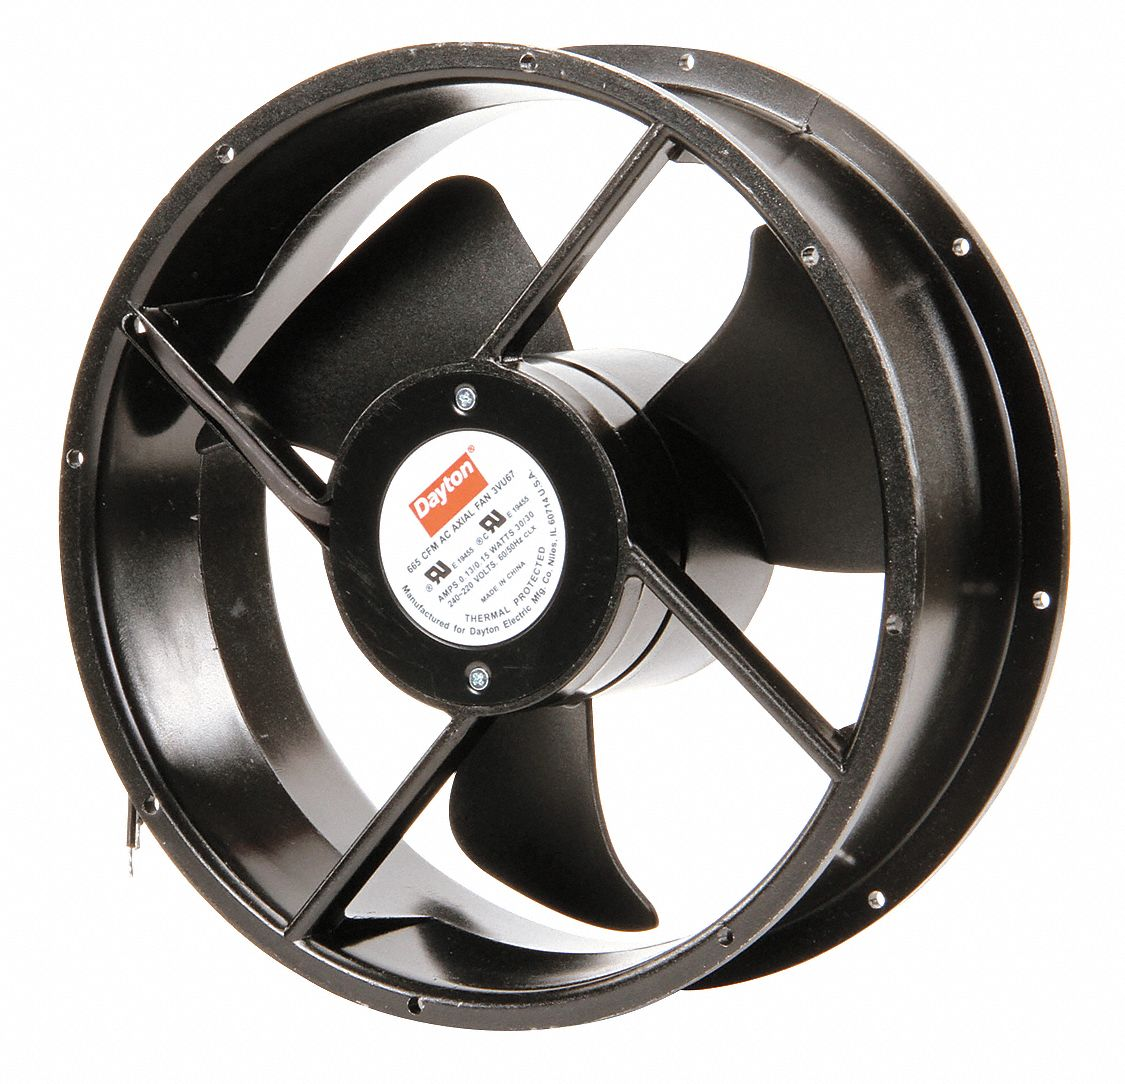 Dayton Axial Fans : Dayton round axial fan quot dia vac voltage